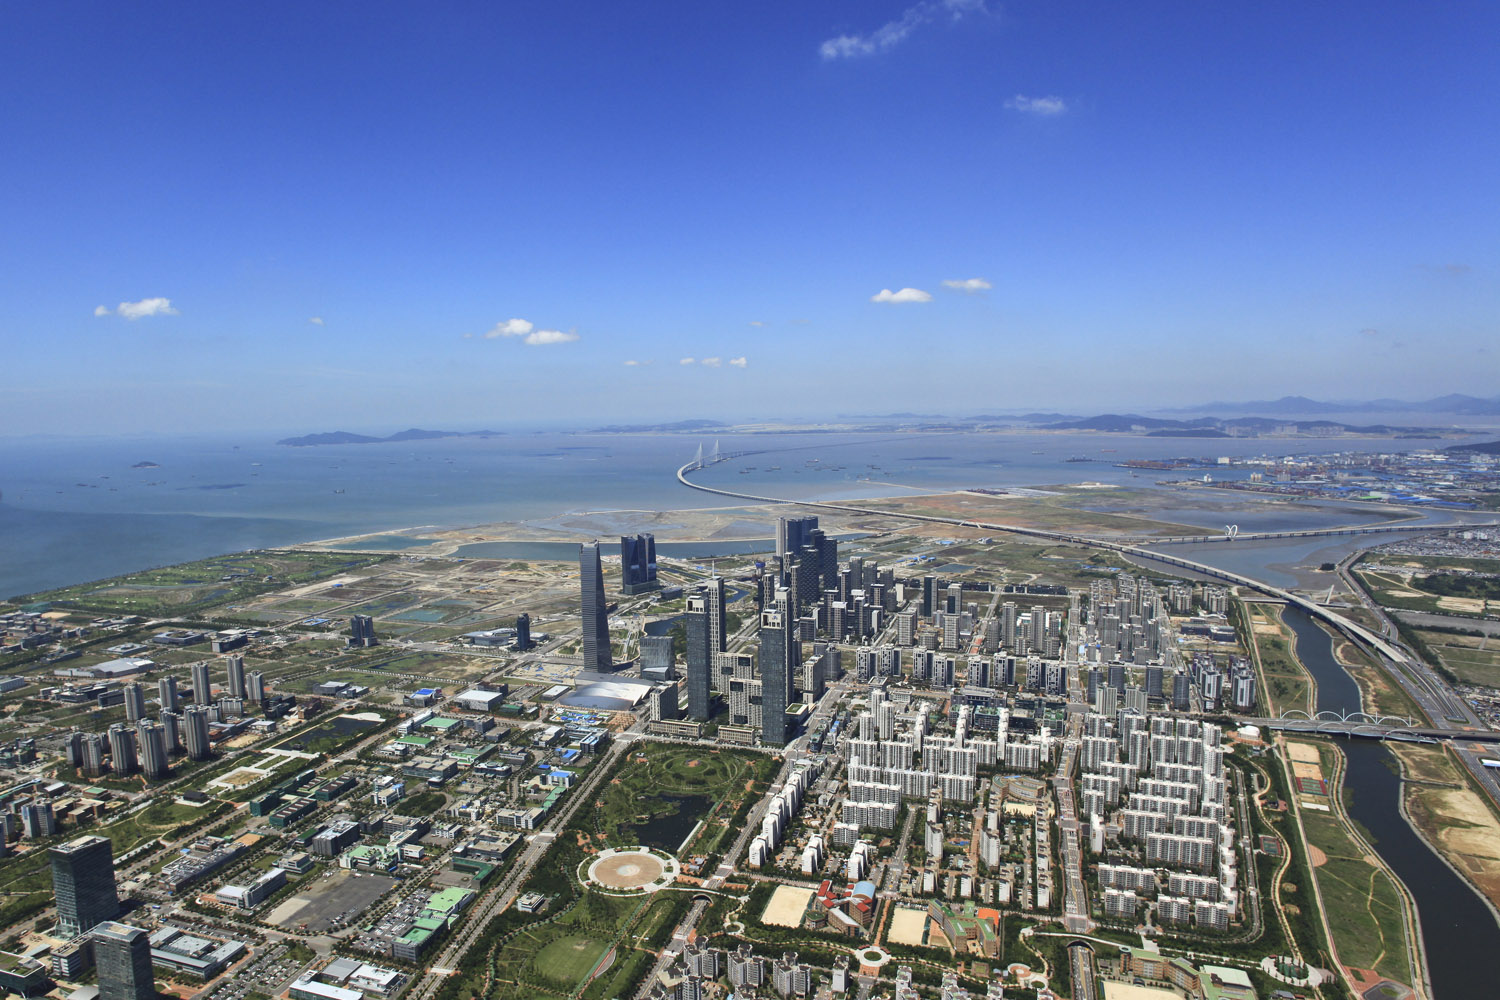 An aerial view of the Songdo International Business District in Incheon, South Korea, in 2013.